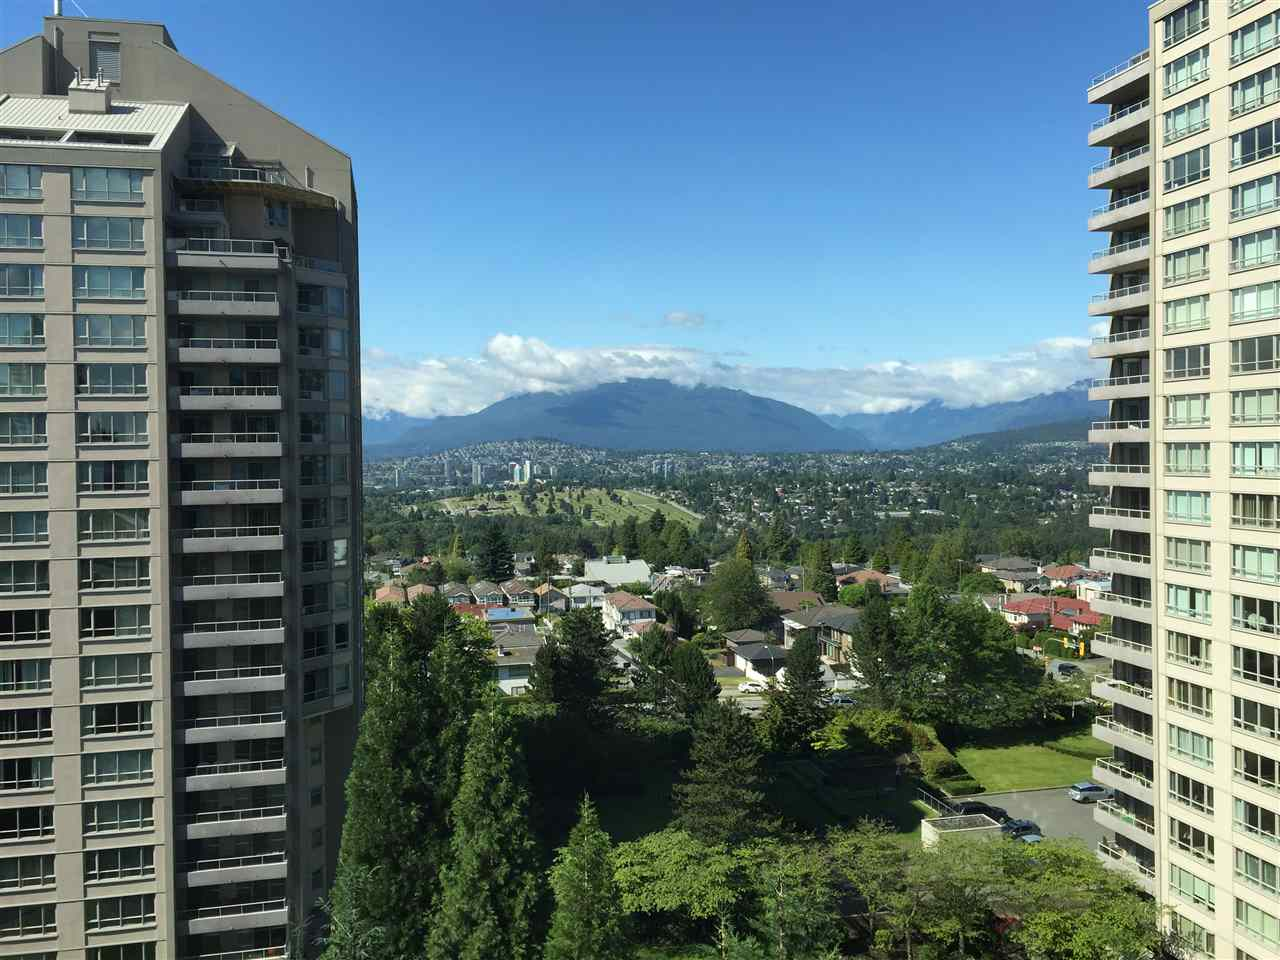 Main Photo: 1150 4825 HAZEL Street in Burnaby: Forest Glen BS Condo for sale (Burnaby South)  : MLS® # R2083245